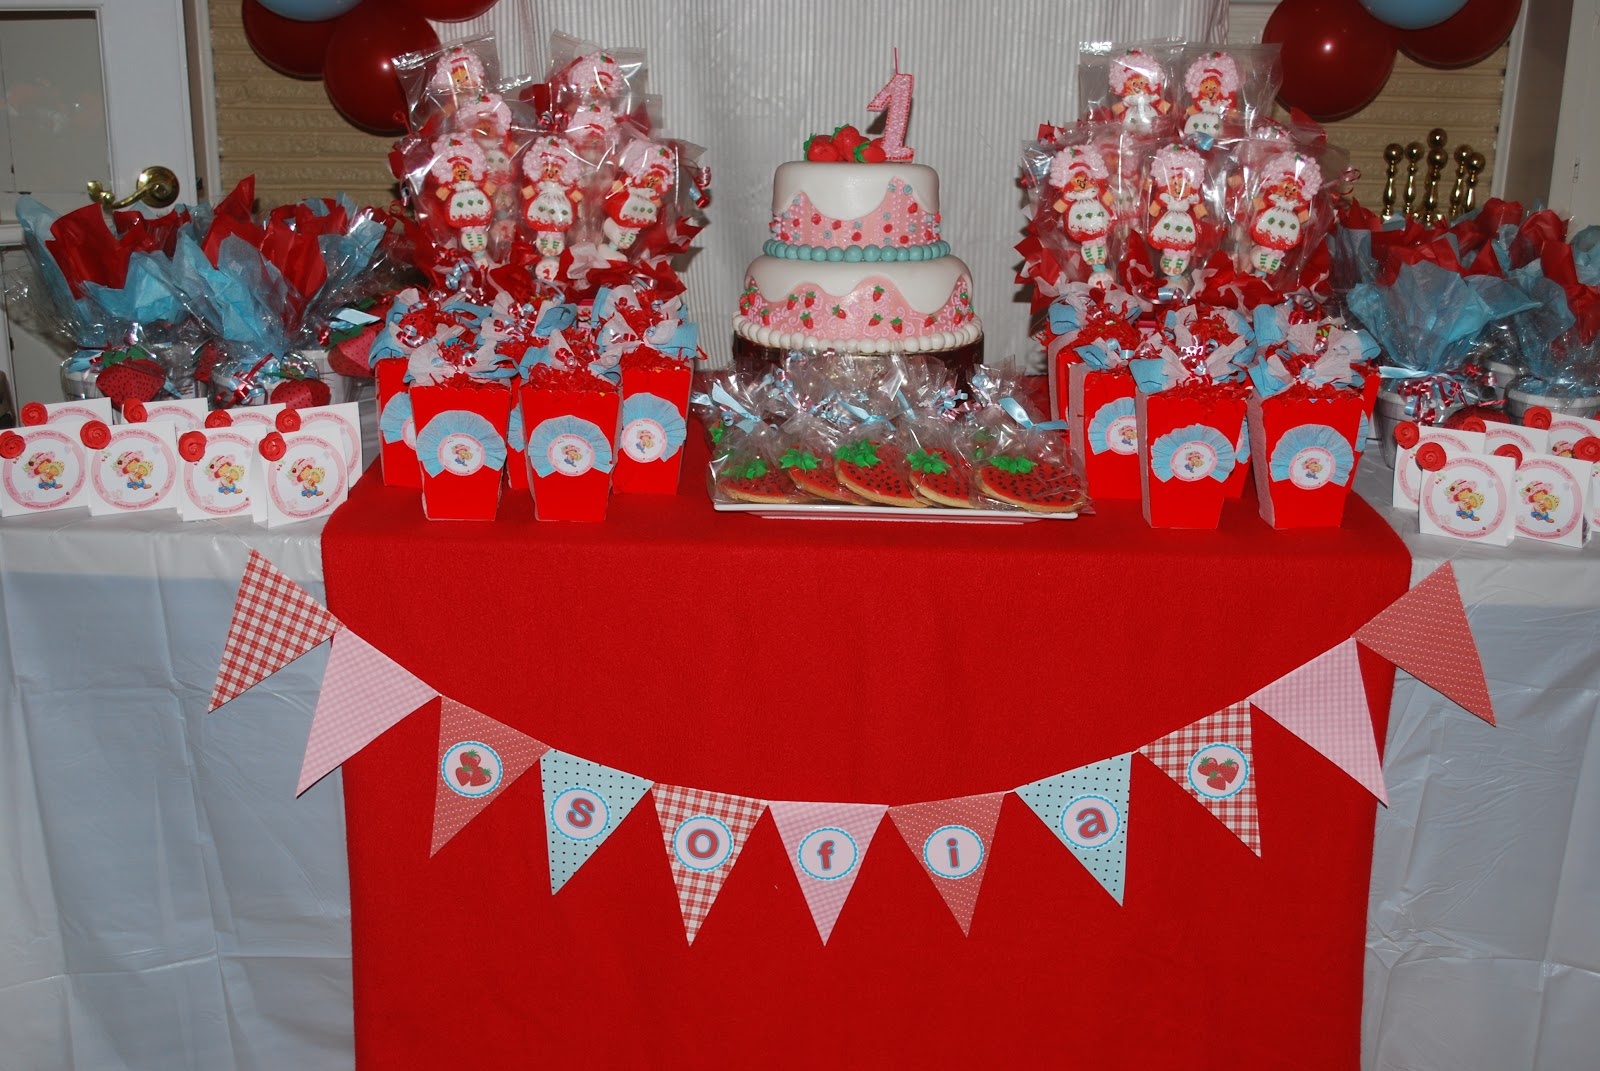 Kids birthday party theme decoration ideas interior for Home decorations for birthday party